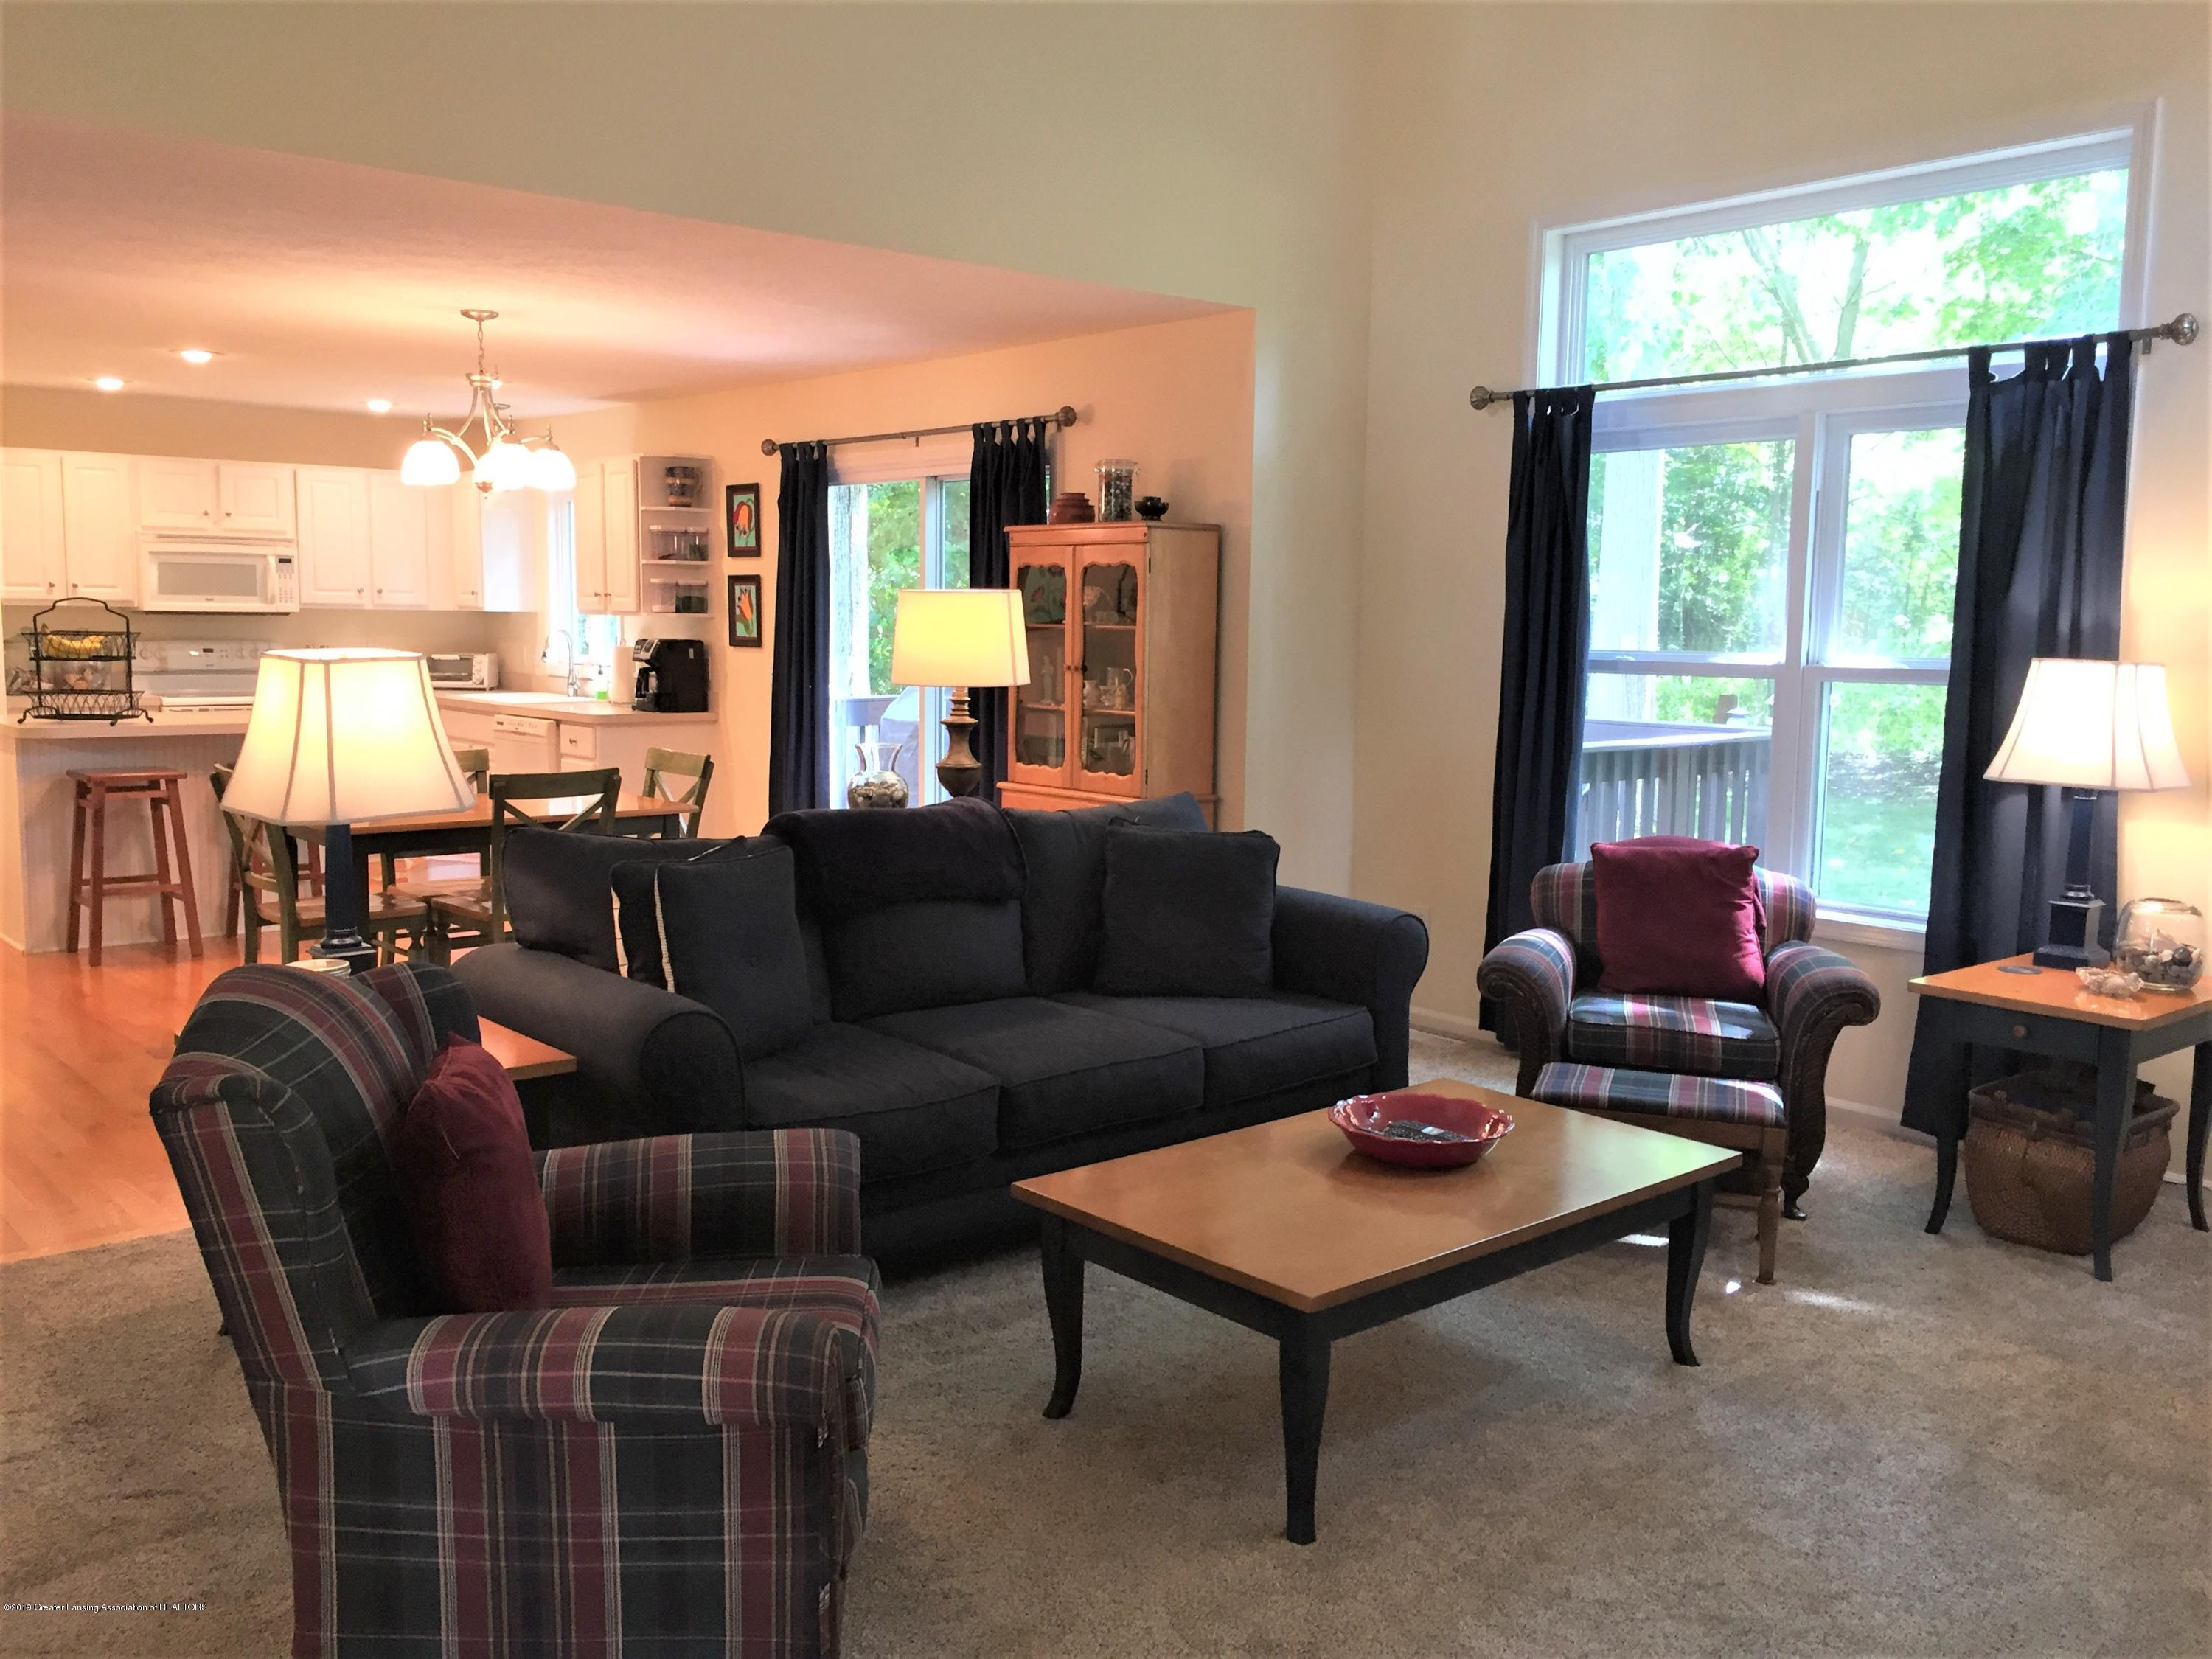 8617 Wheatdale Dr - Living Room View from Master Bedroom - 19